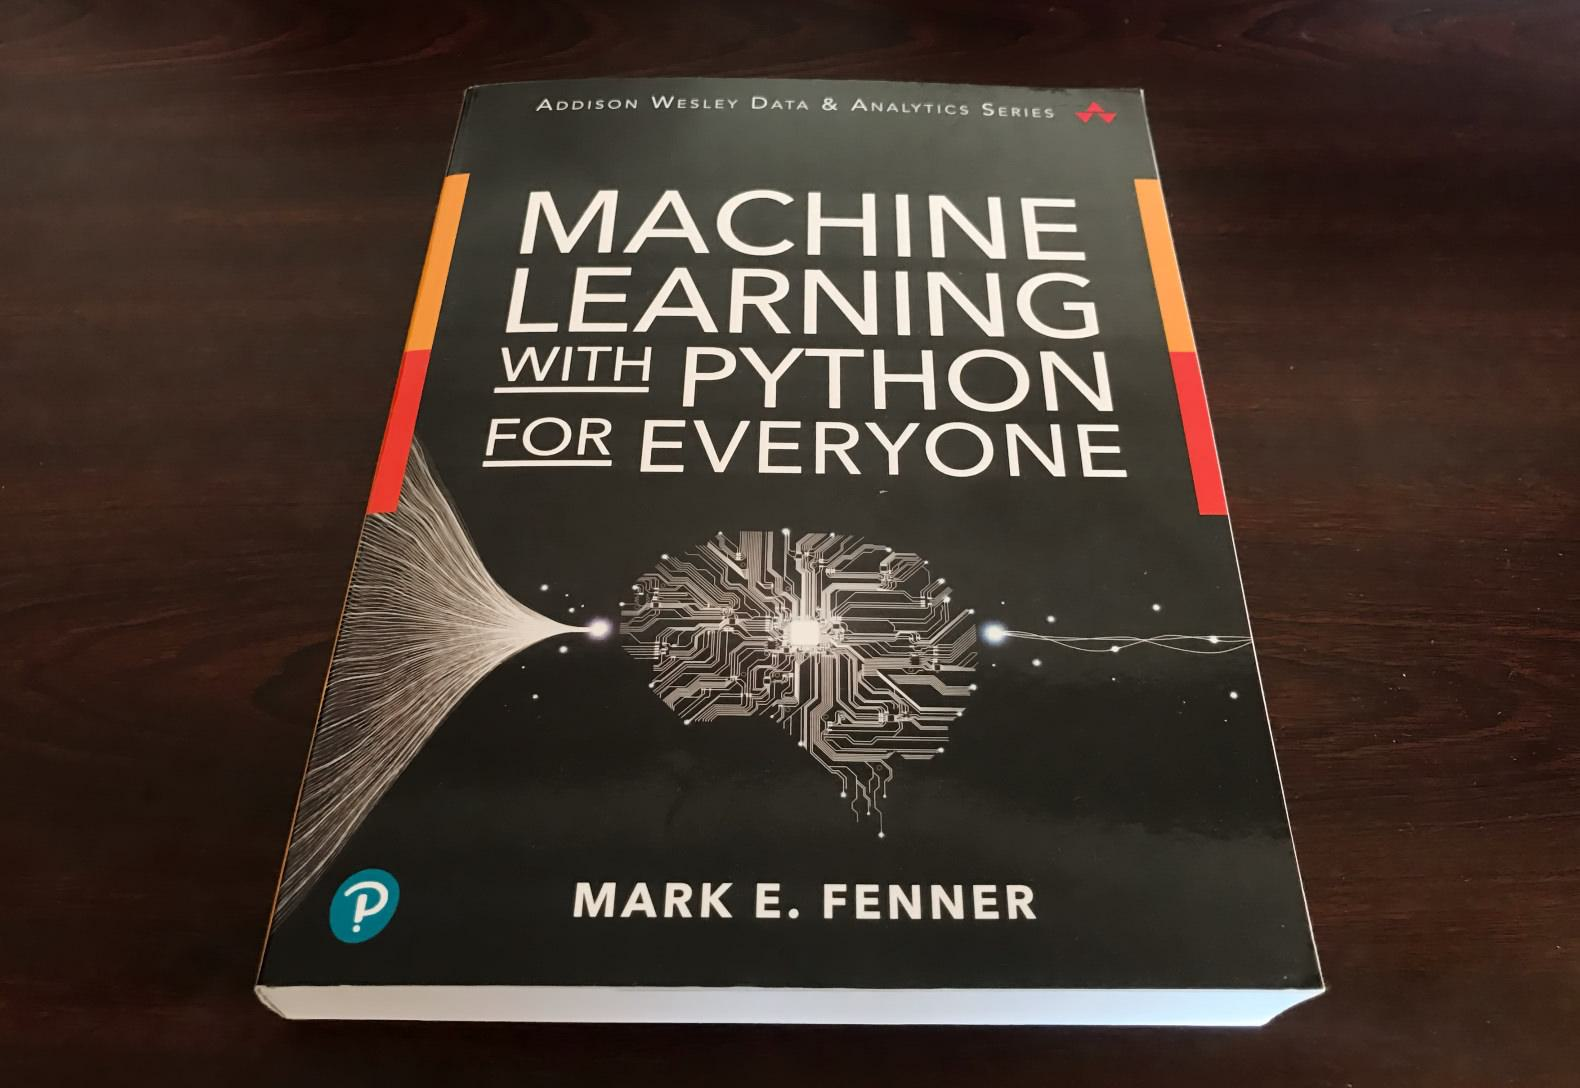 Book review - Machine Learning with Python for Everyone, By Mark E. Fenner